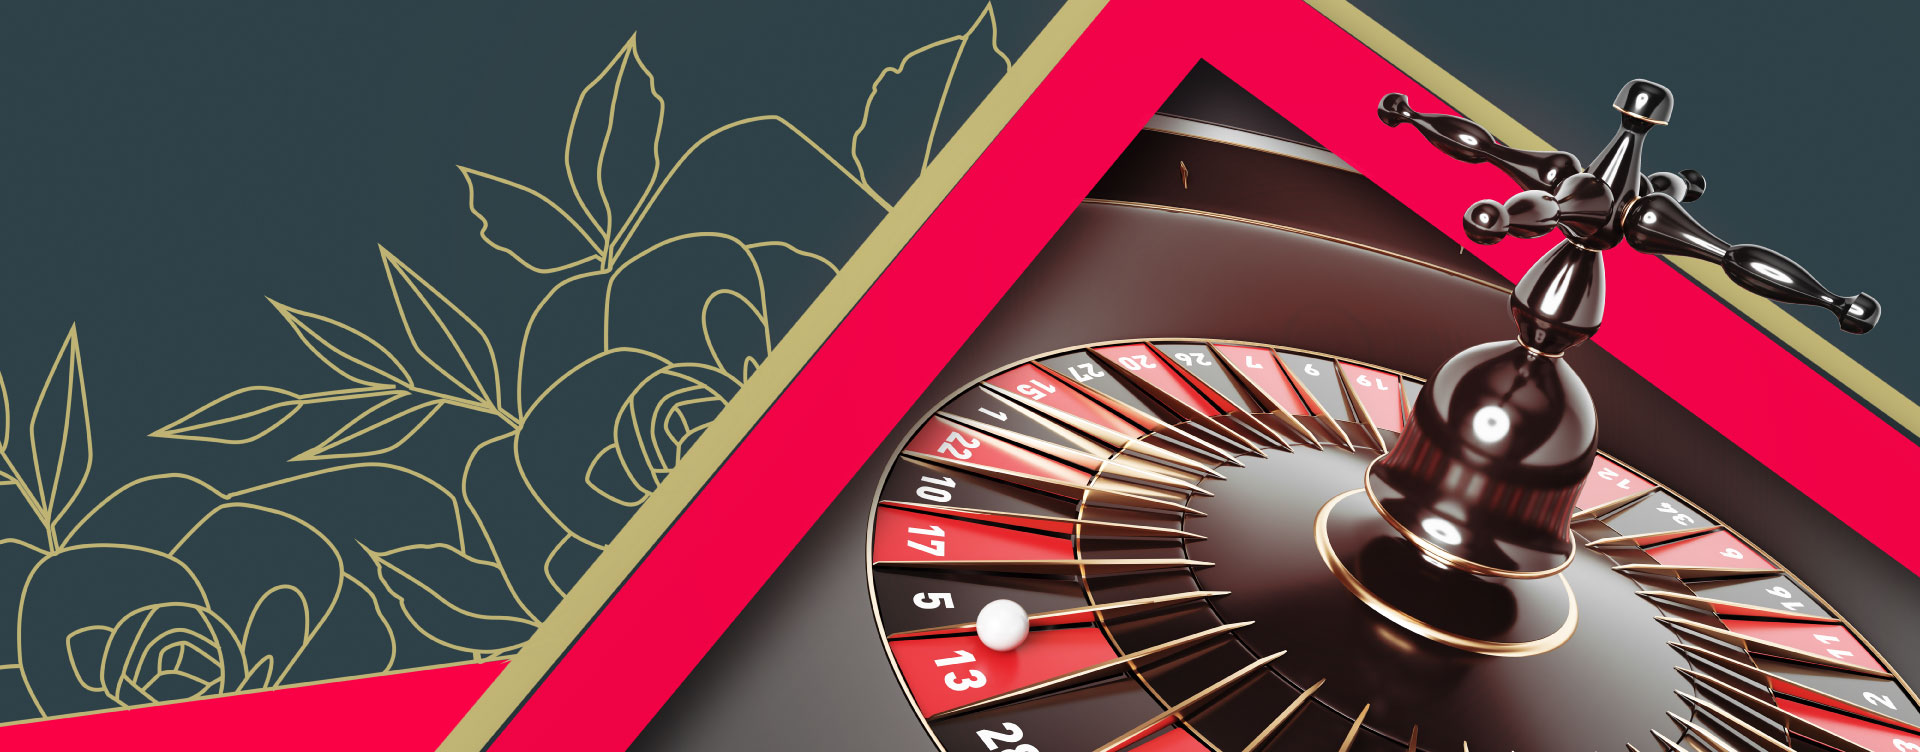 New to Roulette and Wanting to Learn to Win? Read Our Guide Now!